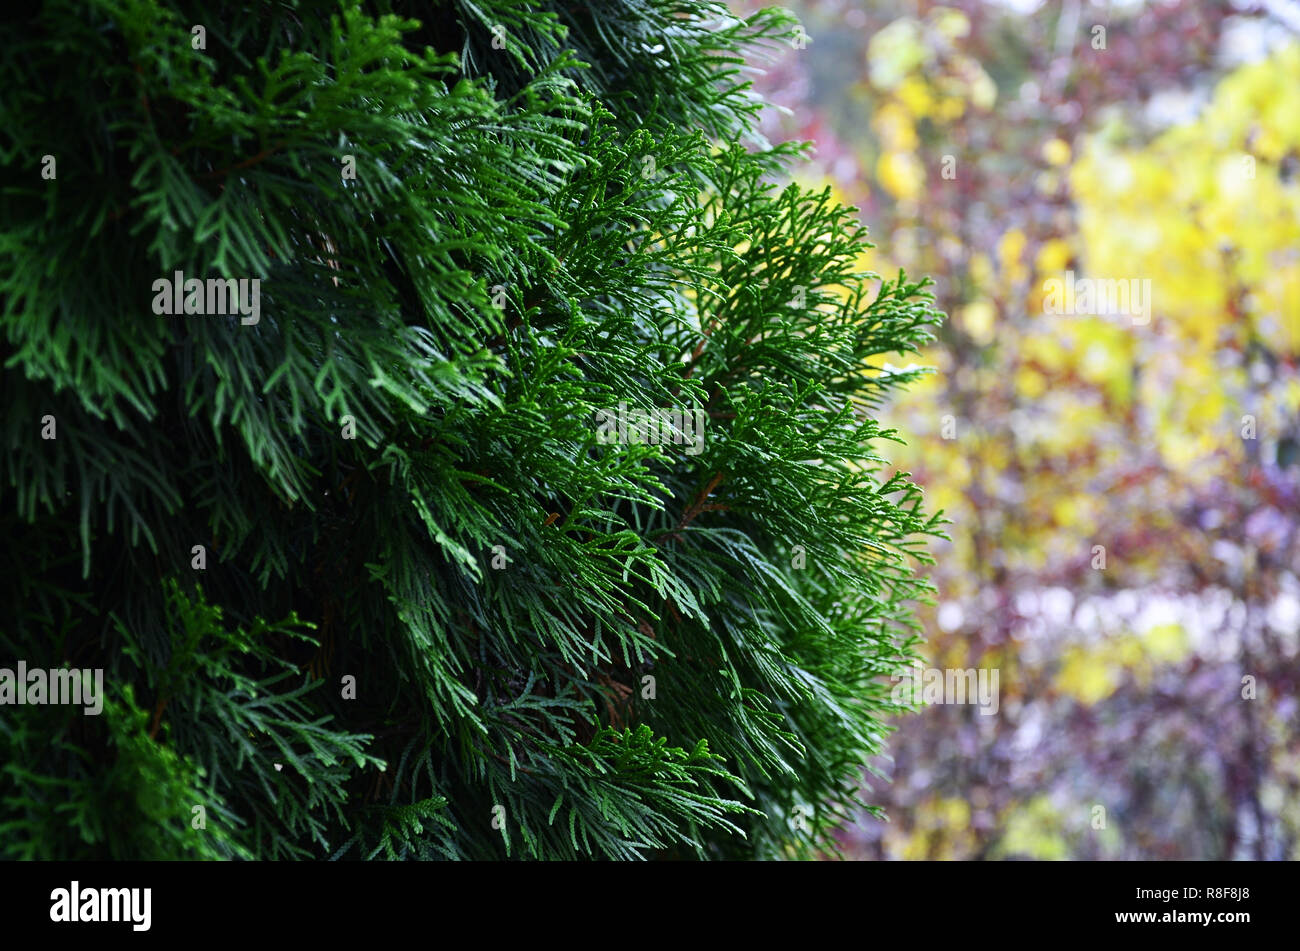 The branches of green spruce close-up at the yellow blurred background Stock Photo